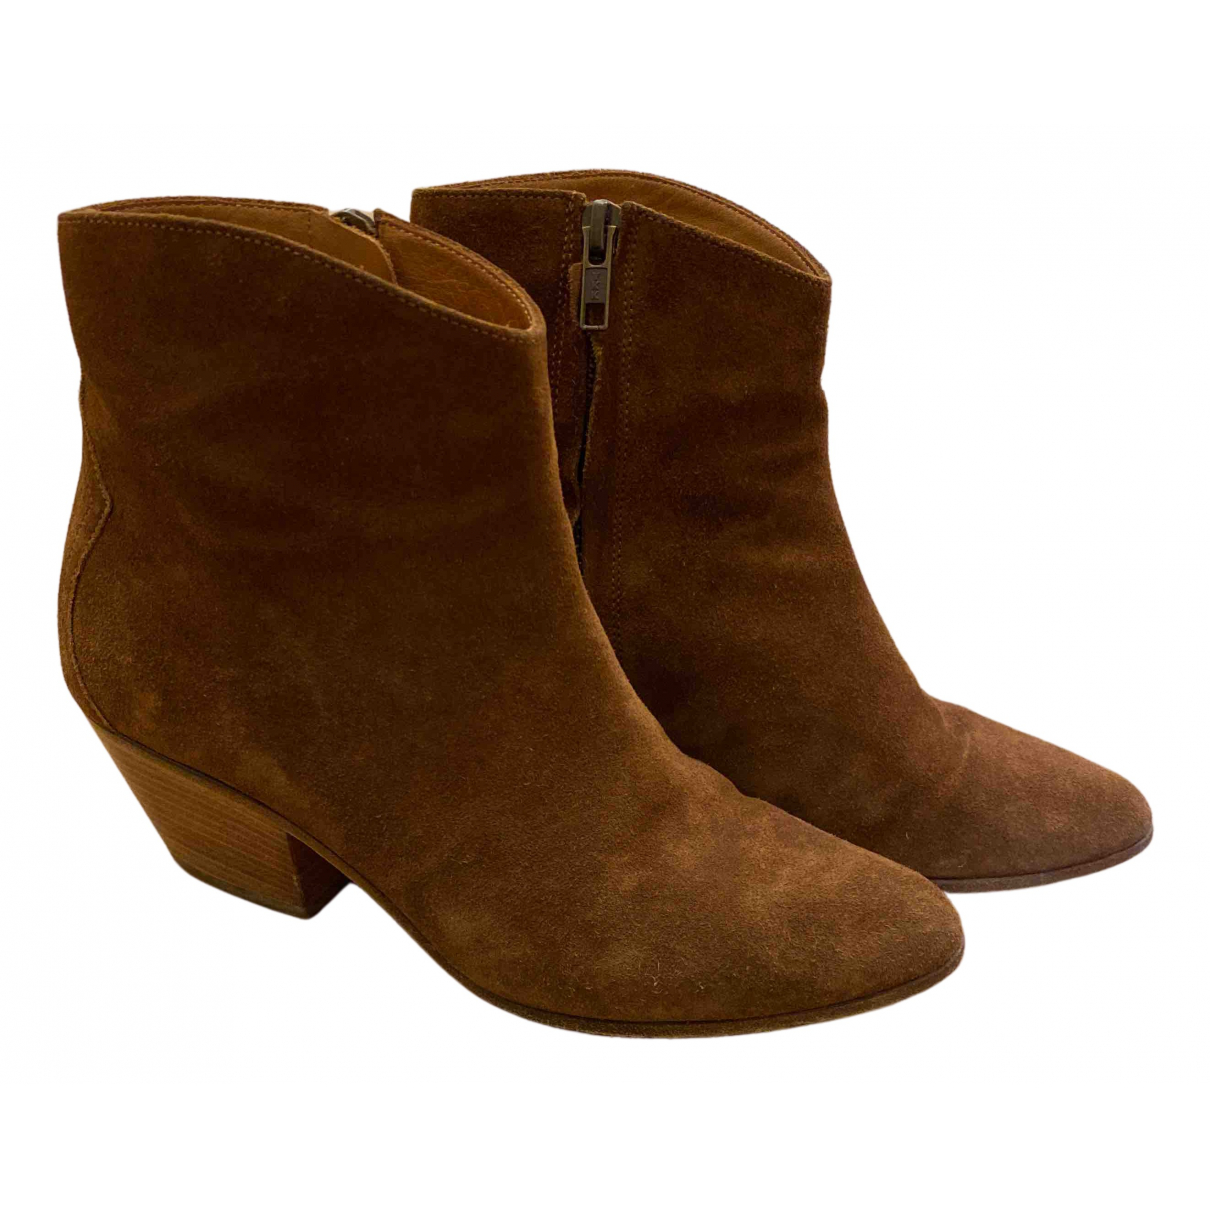 Isabel Marant Etoile N Camel Suede Ankle boots for Women 37 EU